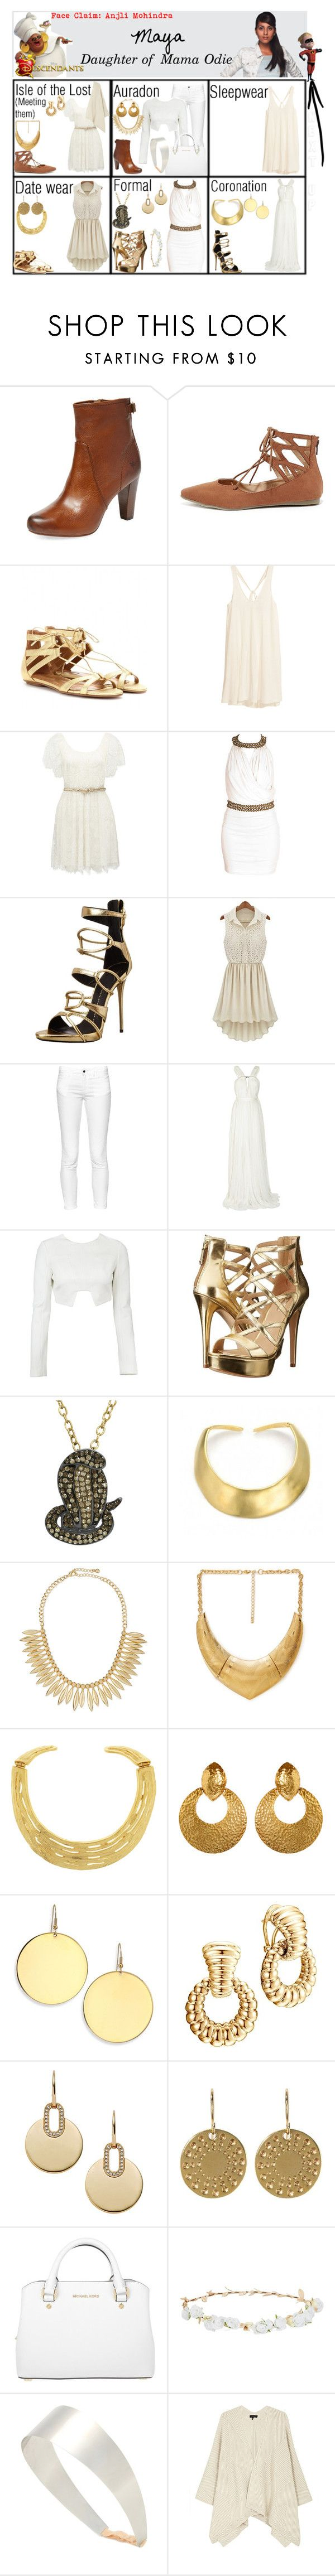 """Maya. Daughter of Mama Odie. Next up: Dash Parr"" by elmoakepoke ❤ liked on Polyvore featuring Frye, Liliana, Aquazzura, H&M, Forever New, Andrea, Giuseppe Zanotti, French Connection, Lanvin and GUESS"